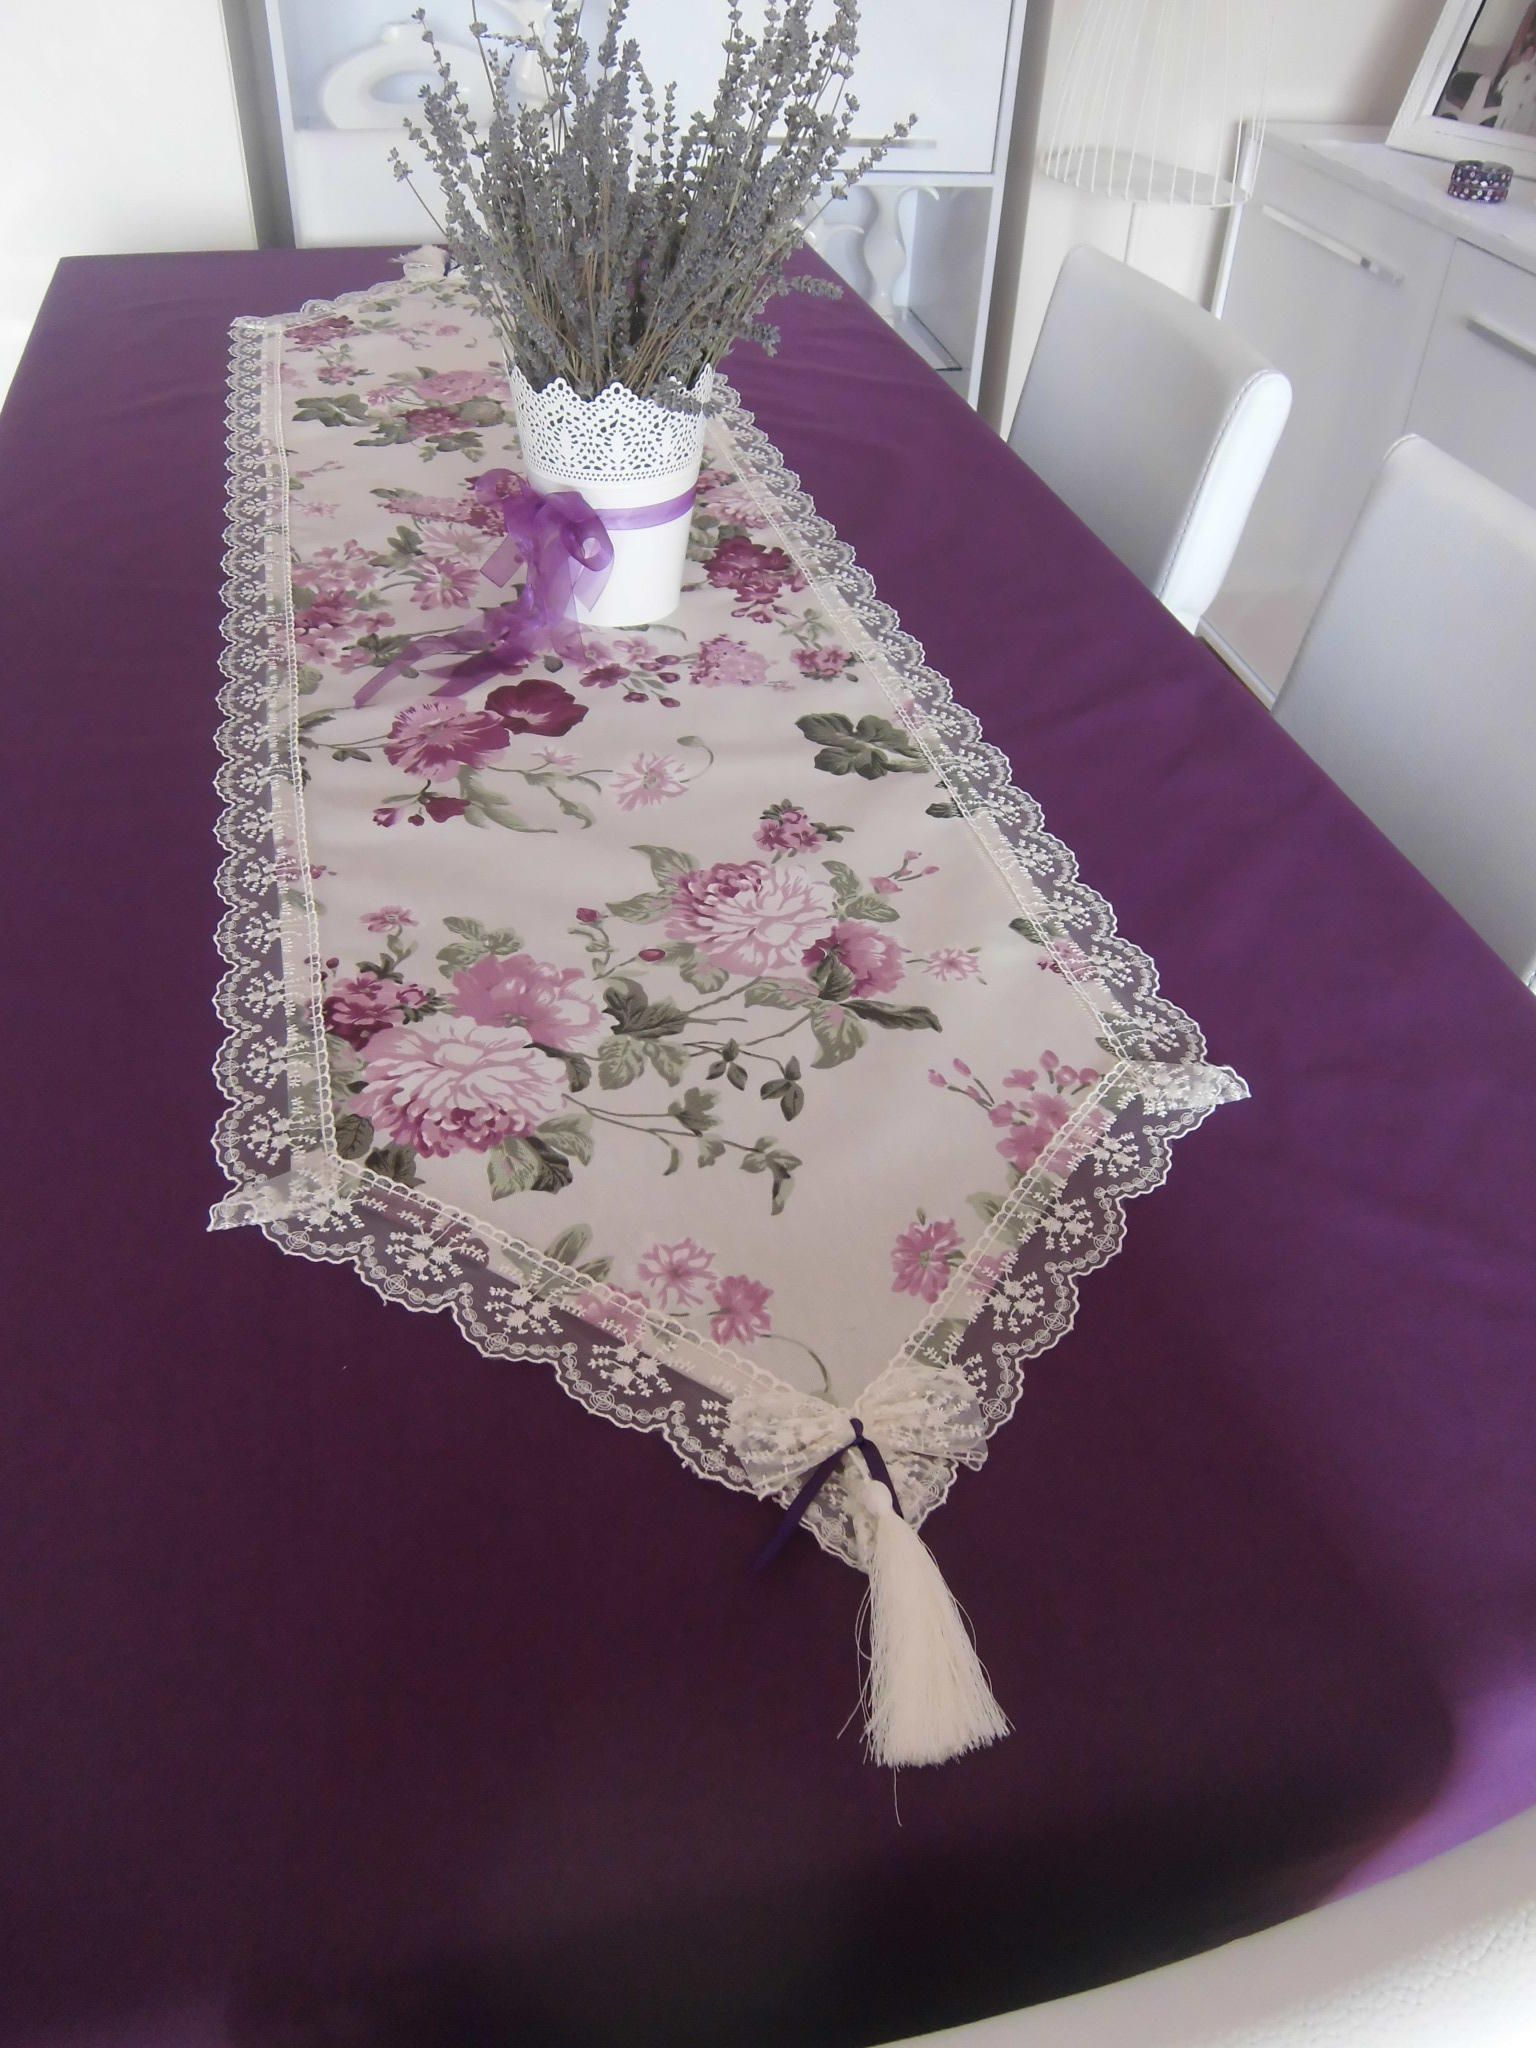 Pin by Ethel Dibble on Table Runners Pinterest